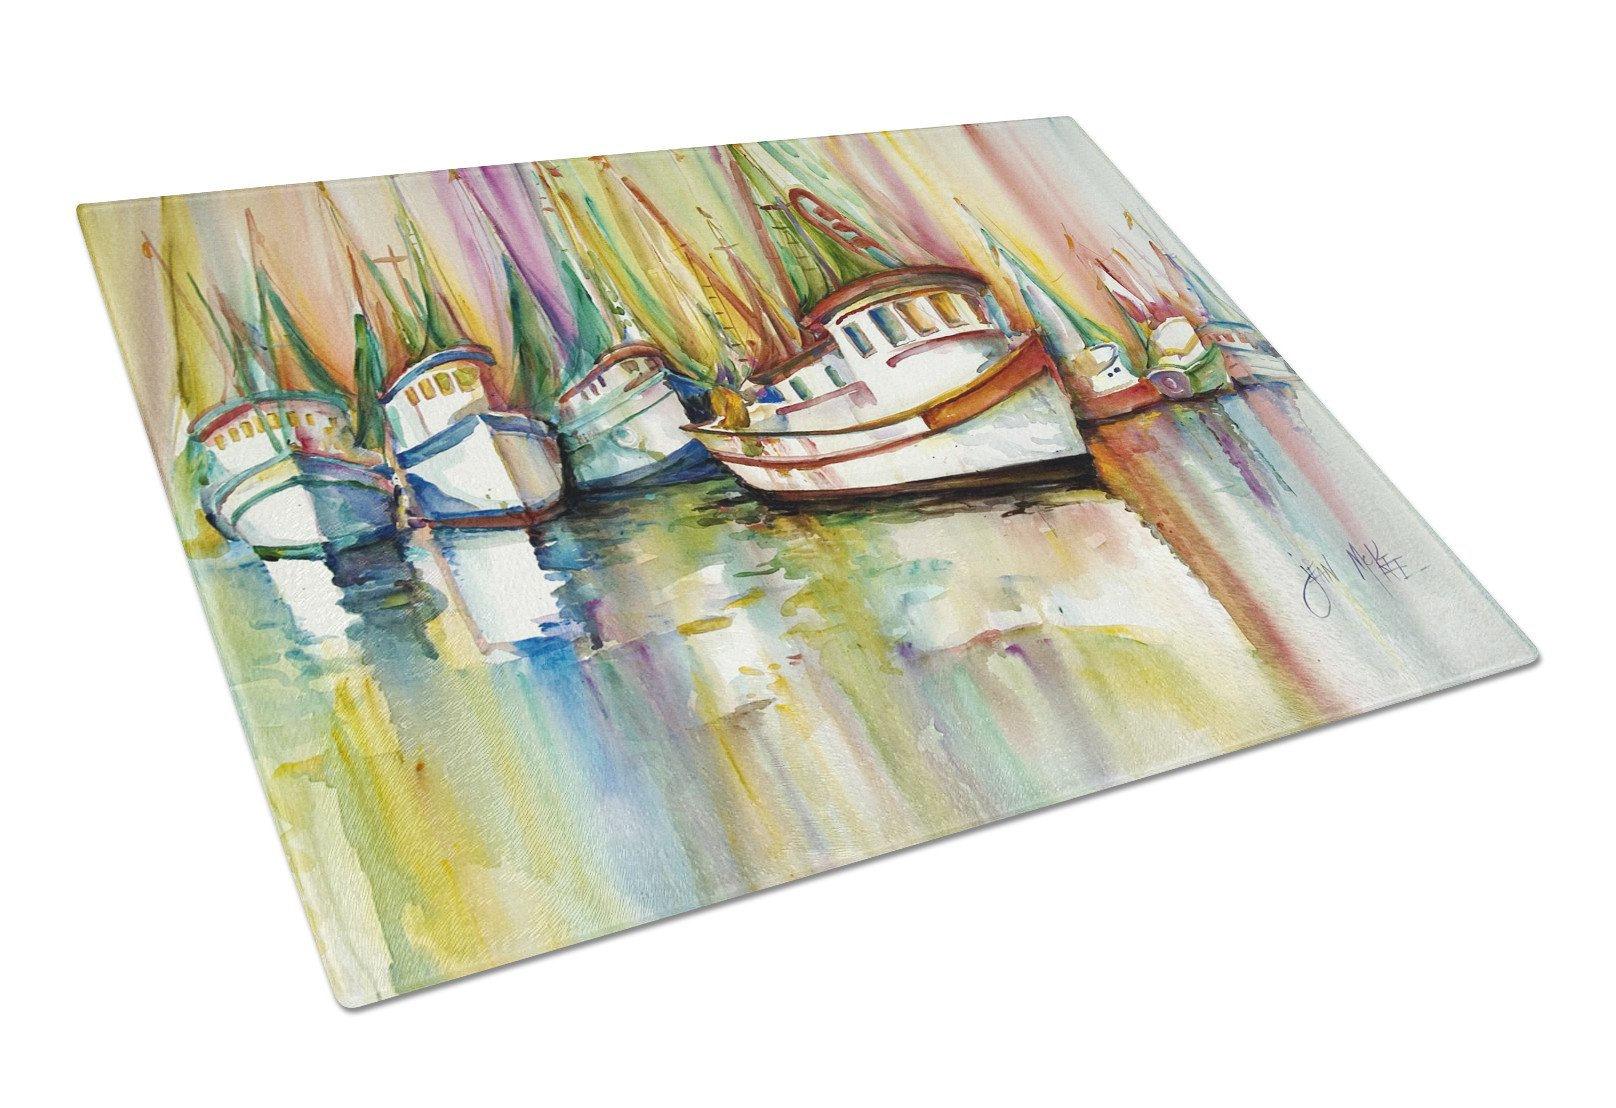 Shrimp Fleet Glass Cutting Board Large JMK1074LCB by Caroline's Treasures